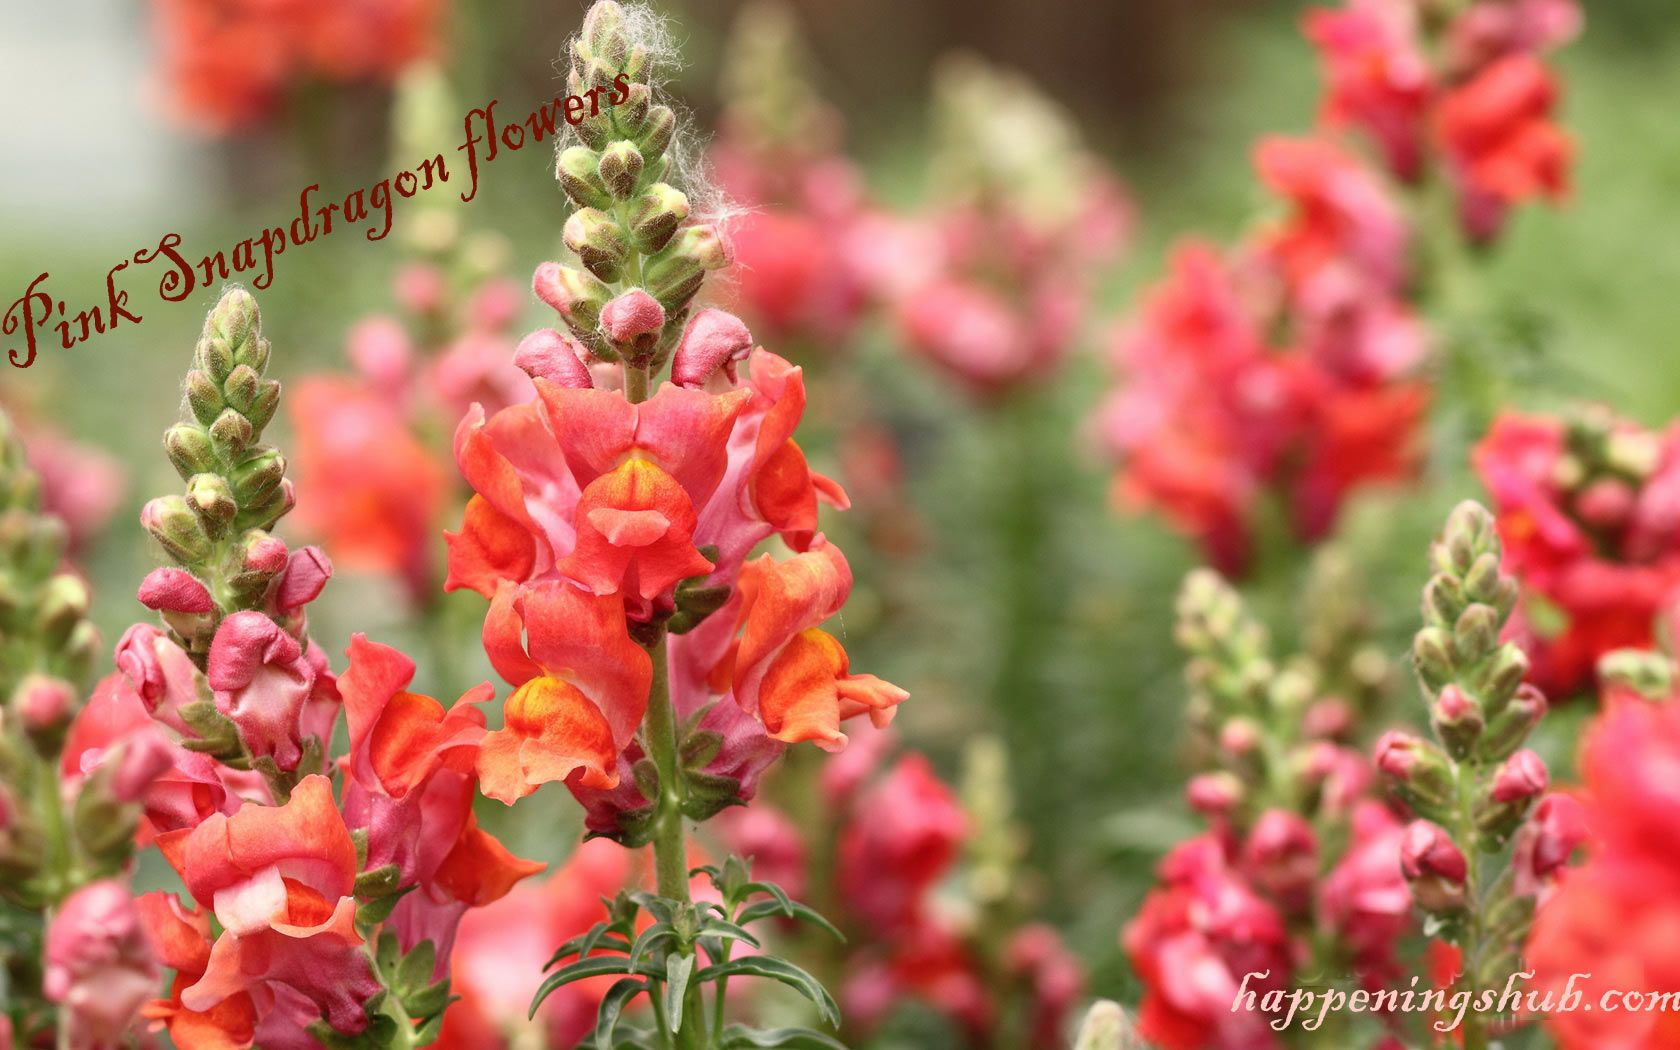 Snapdragon Flower Meaning Images growing Care Streaming